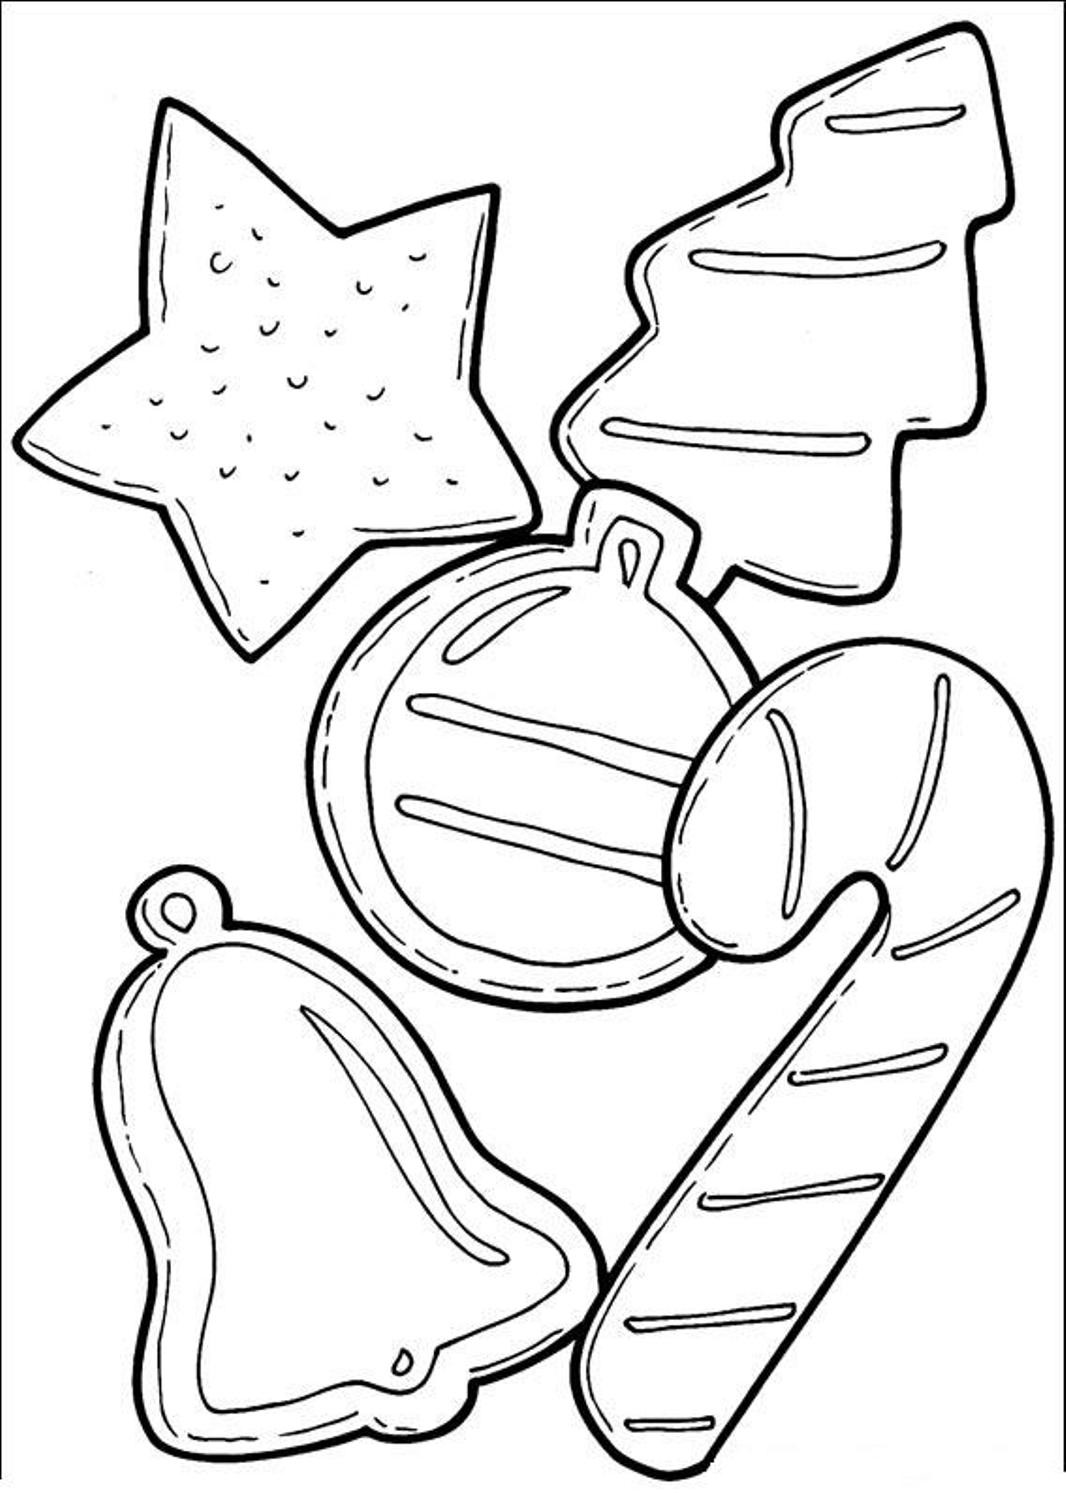 Brownie Girl Scouts Selling Cookies coloring page | Free Printable ... | 1493x1066